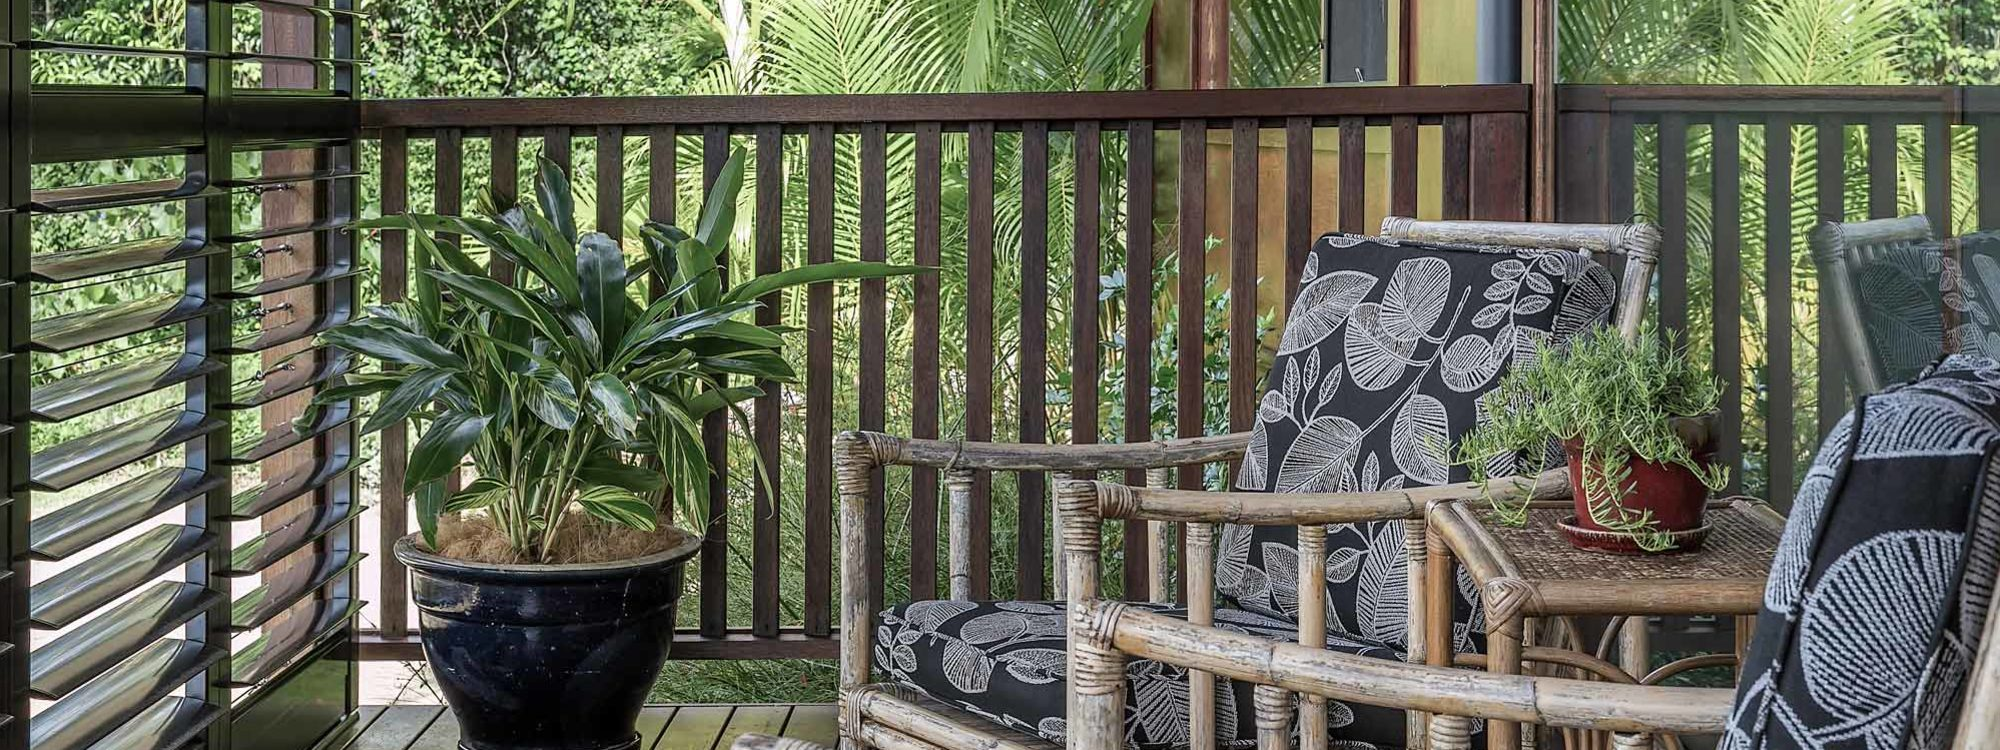 Eastern Rise Studio - Byron Bay Hinterland - Outdoor Seating Area